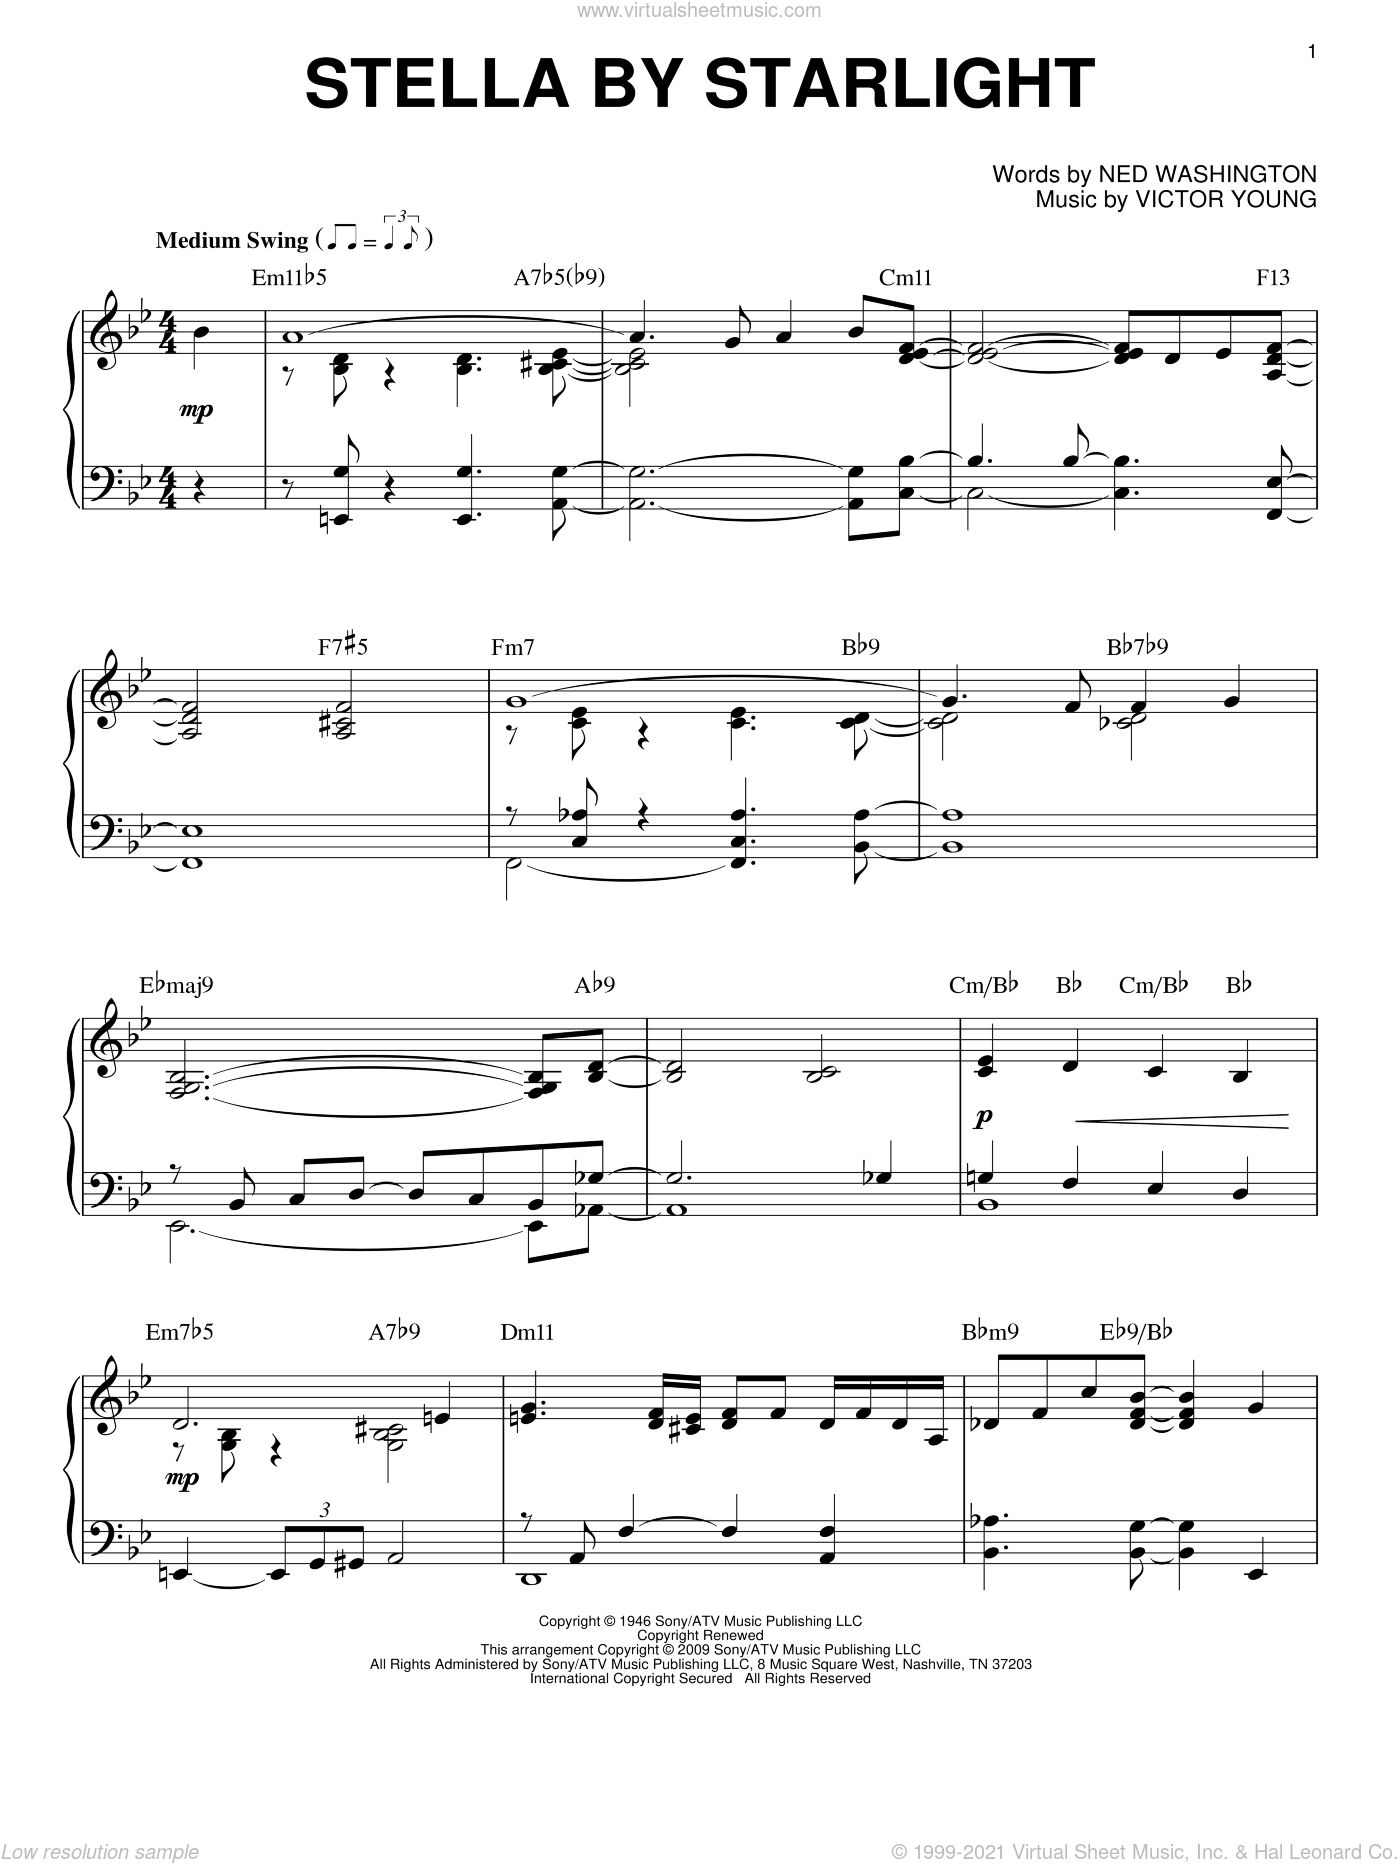 Stella By Starlight sheet music for piano solo by Victor Young and Ned Washington, intermediate skill level